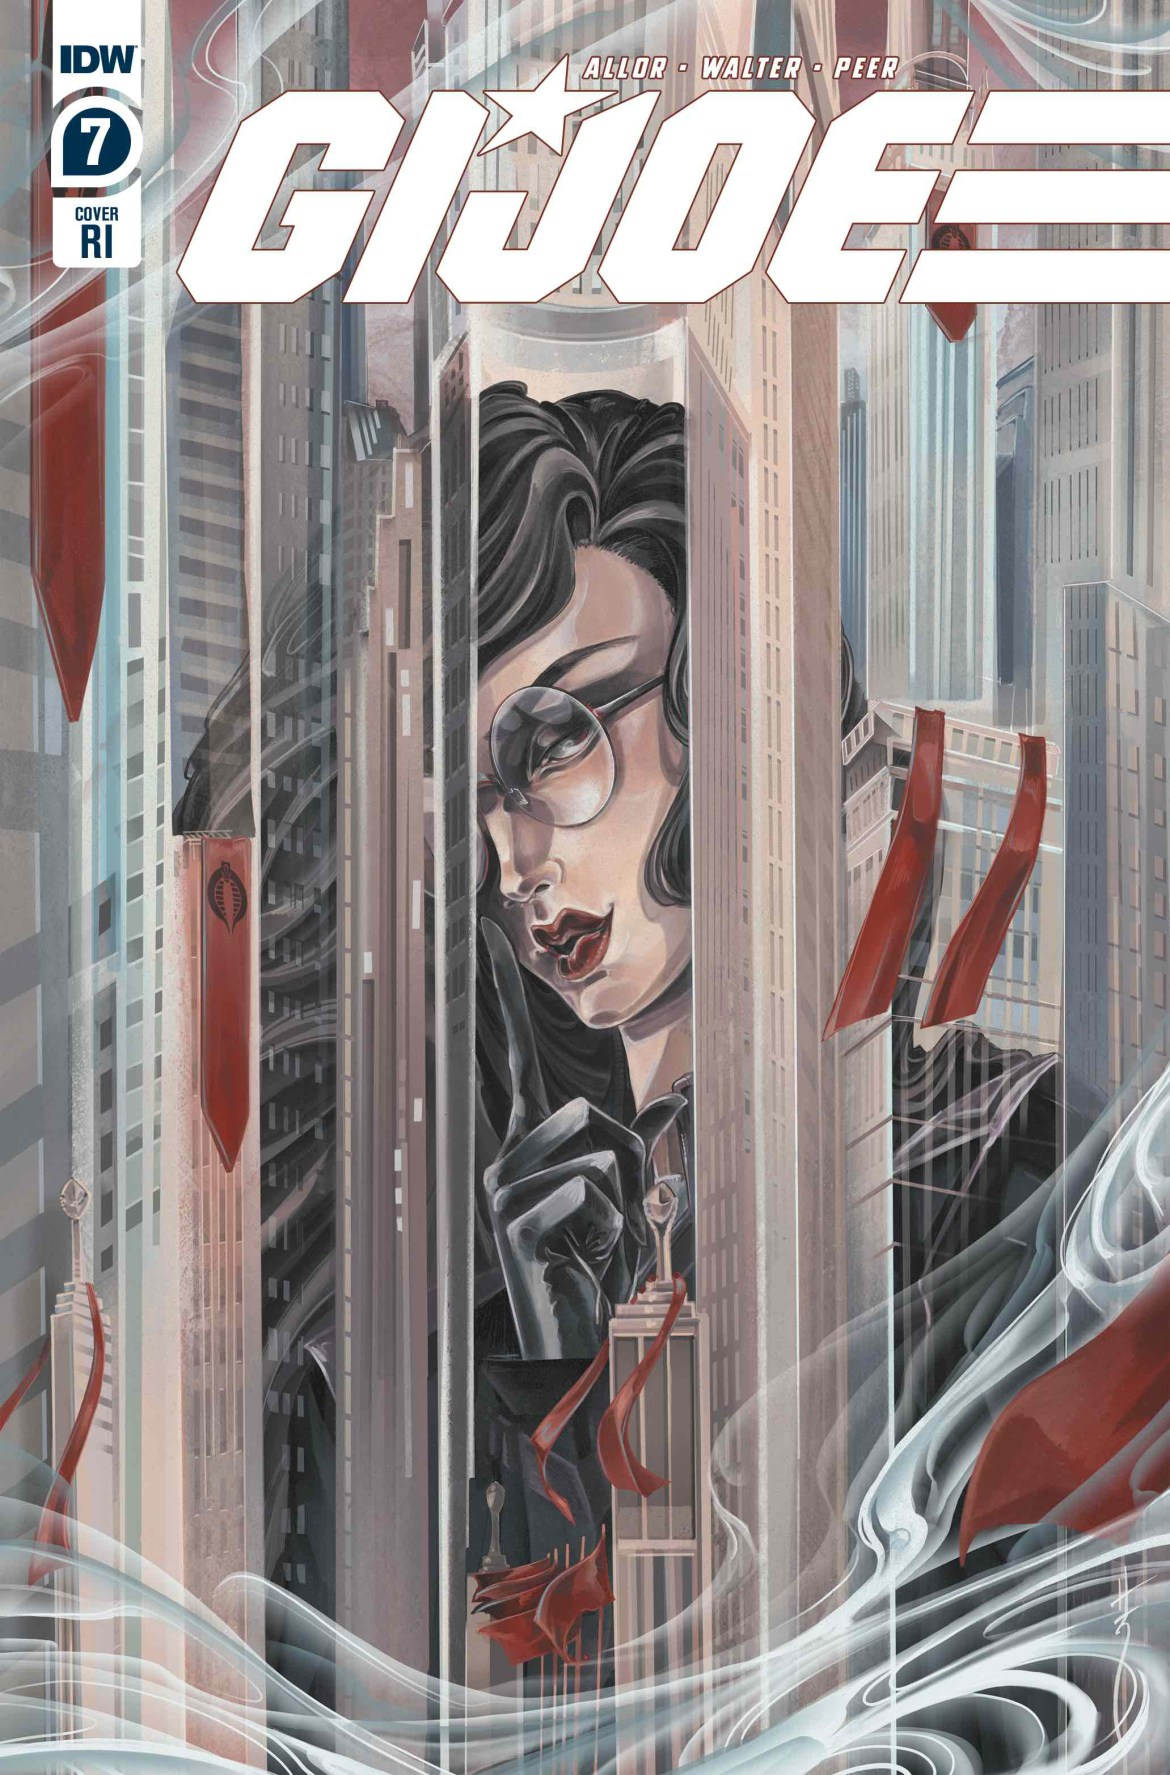 770916_f73c09622f36a049b8b2a220c5cc817e3279e11e ComicList: IDW Publishing New Releases for 08/19/2020